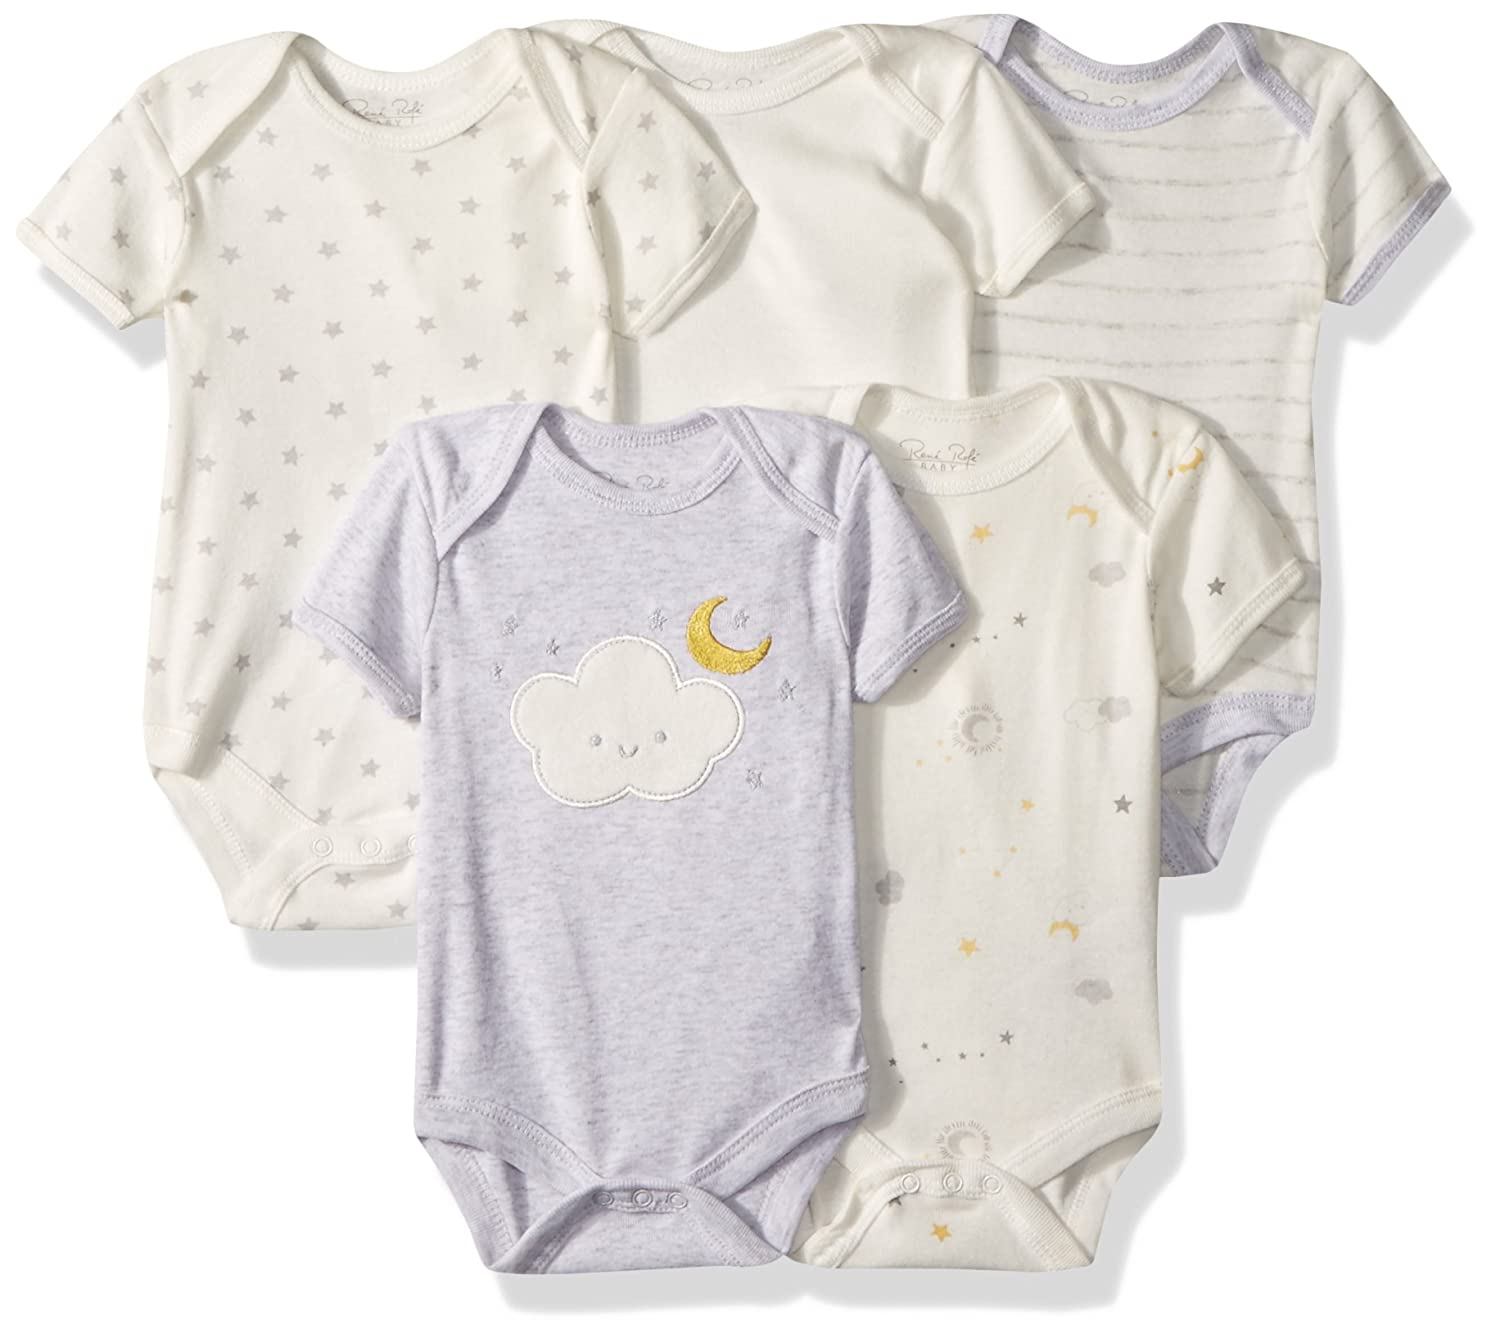 Rene Rofe Baby Collection Unisex 5-Pack Bodysuits